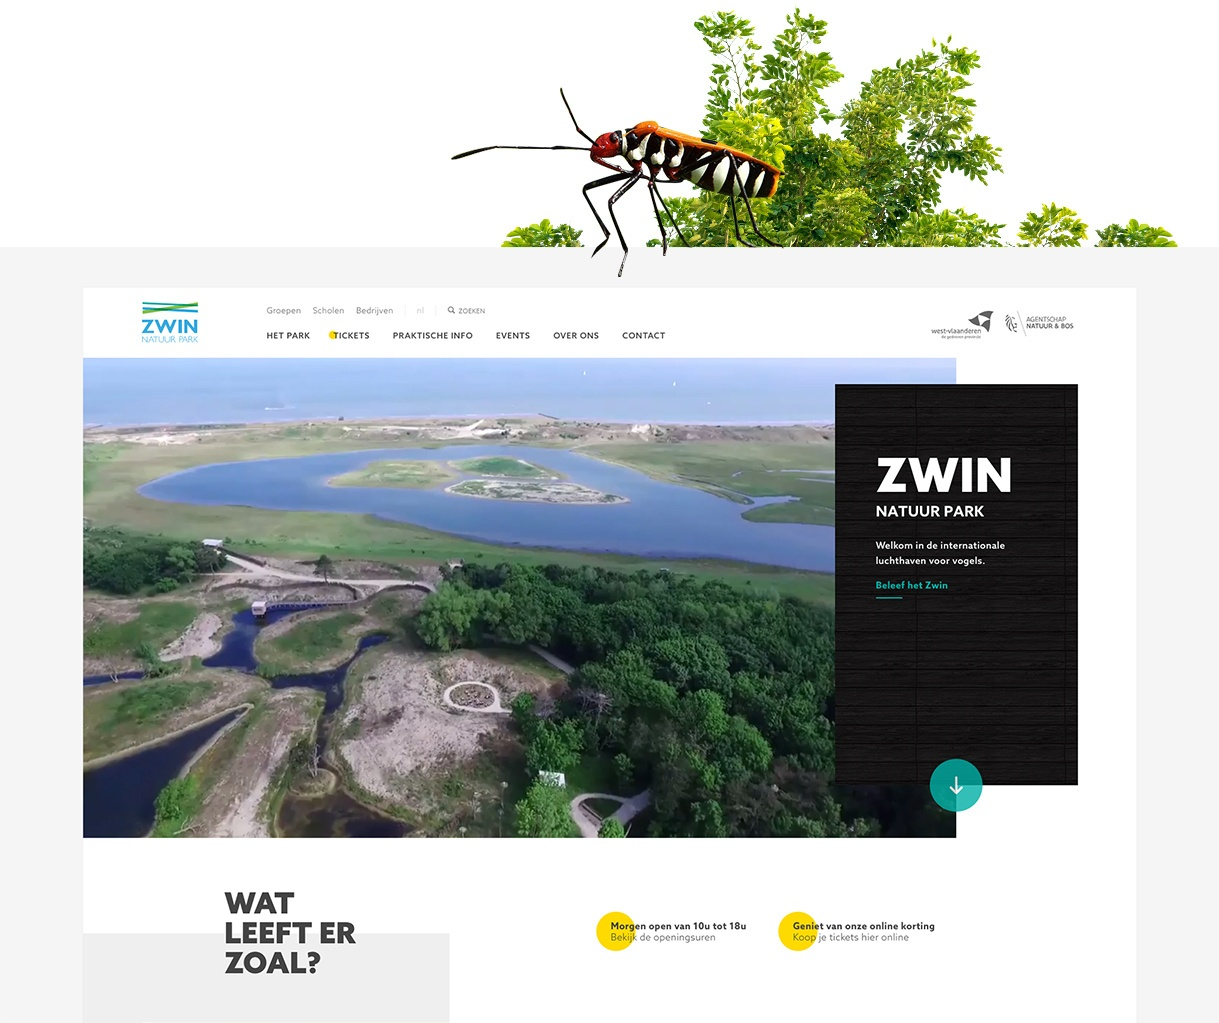 Zwin website homepagina